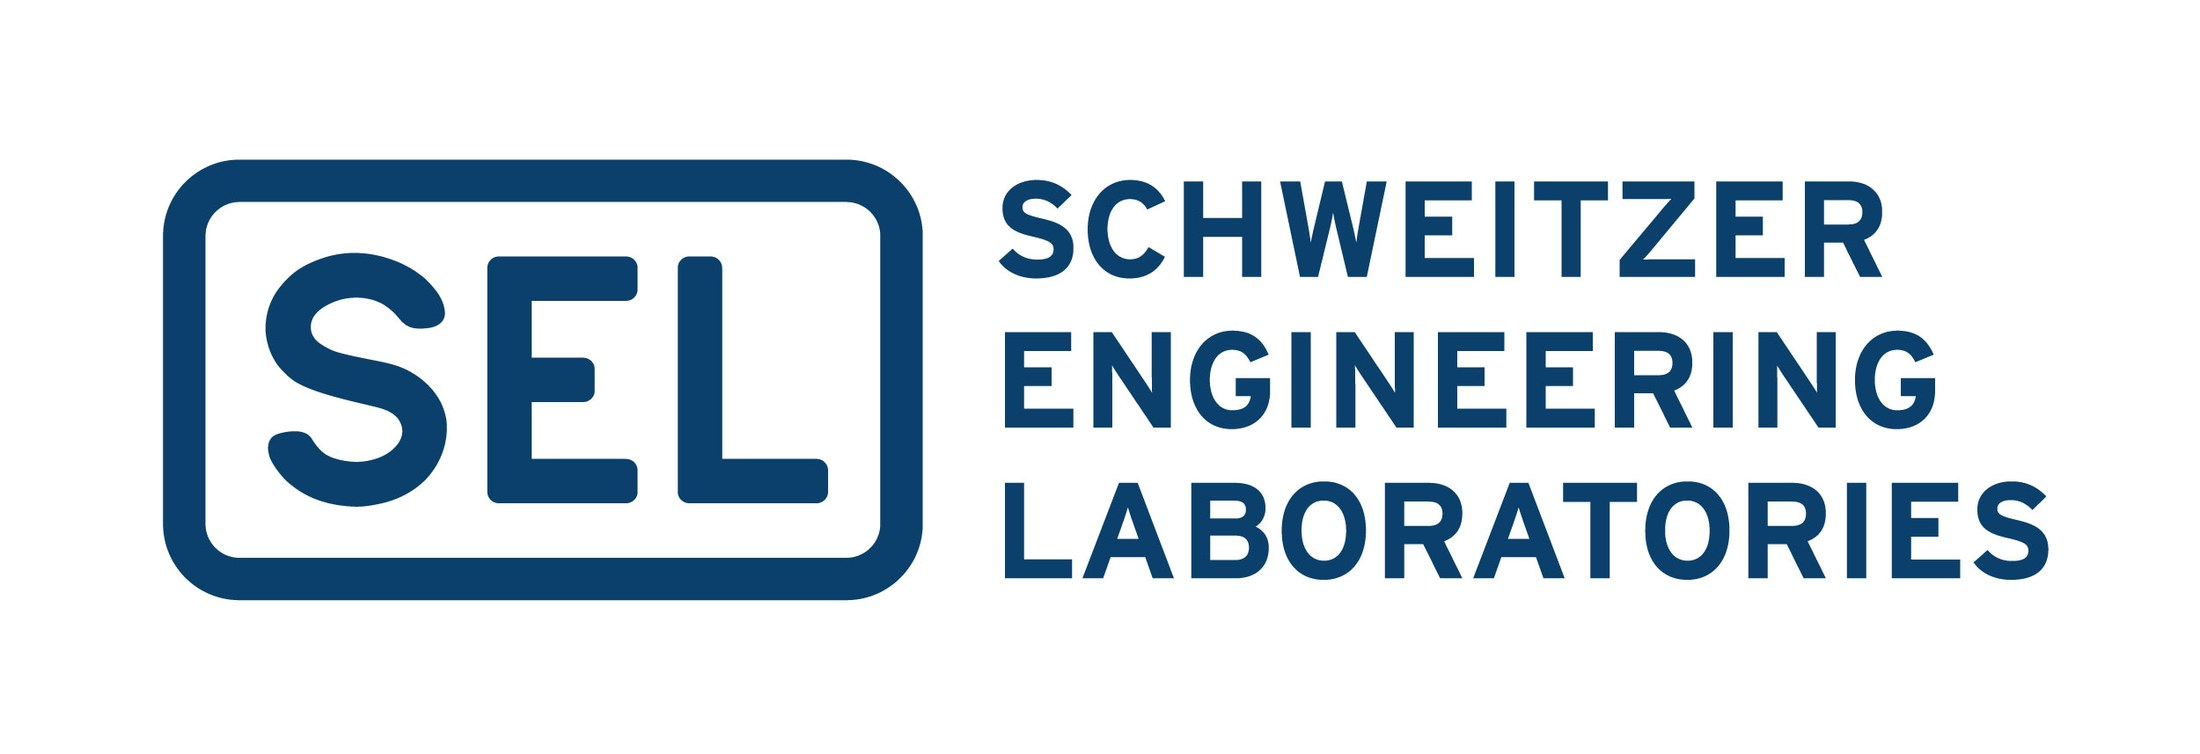 MCS Sponsor Schweitzer Engineering Laboratories-thank you for your continued support-robotics club, MOSS, Employee Donations